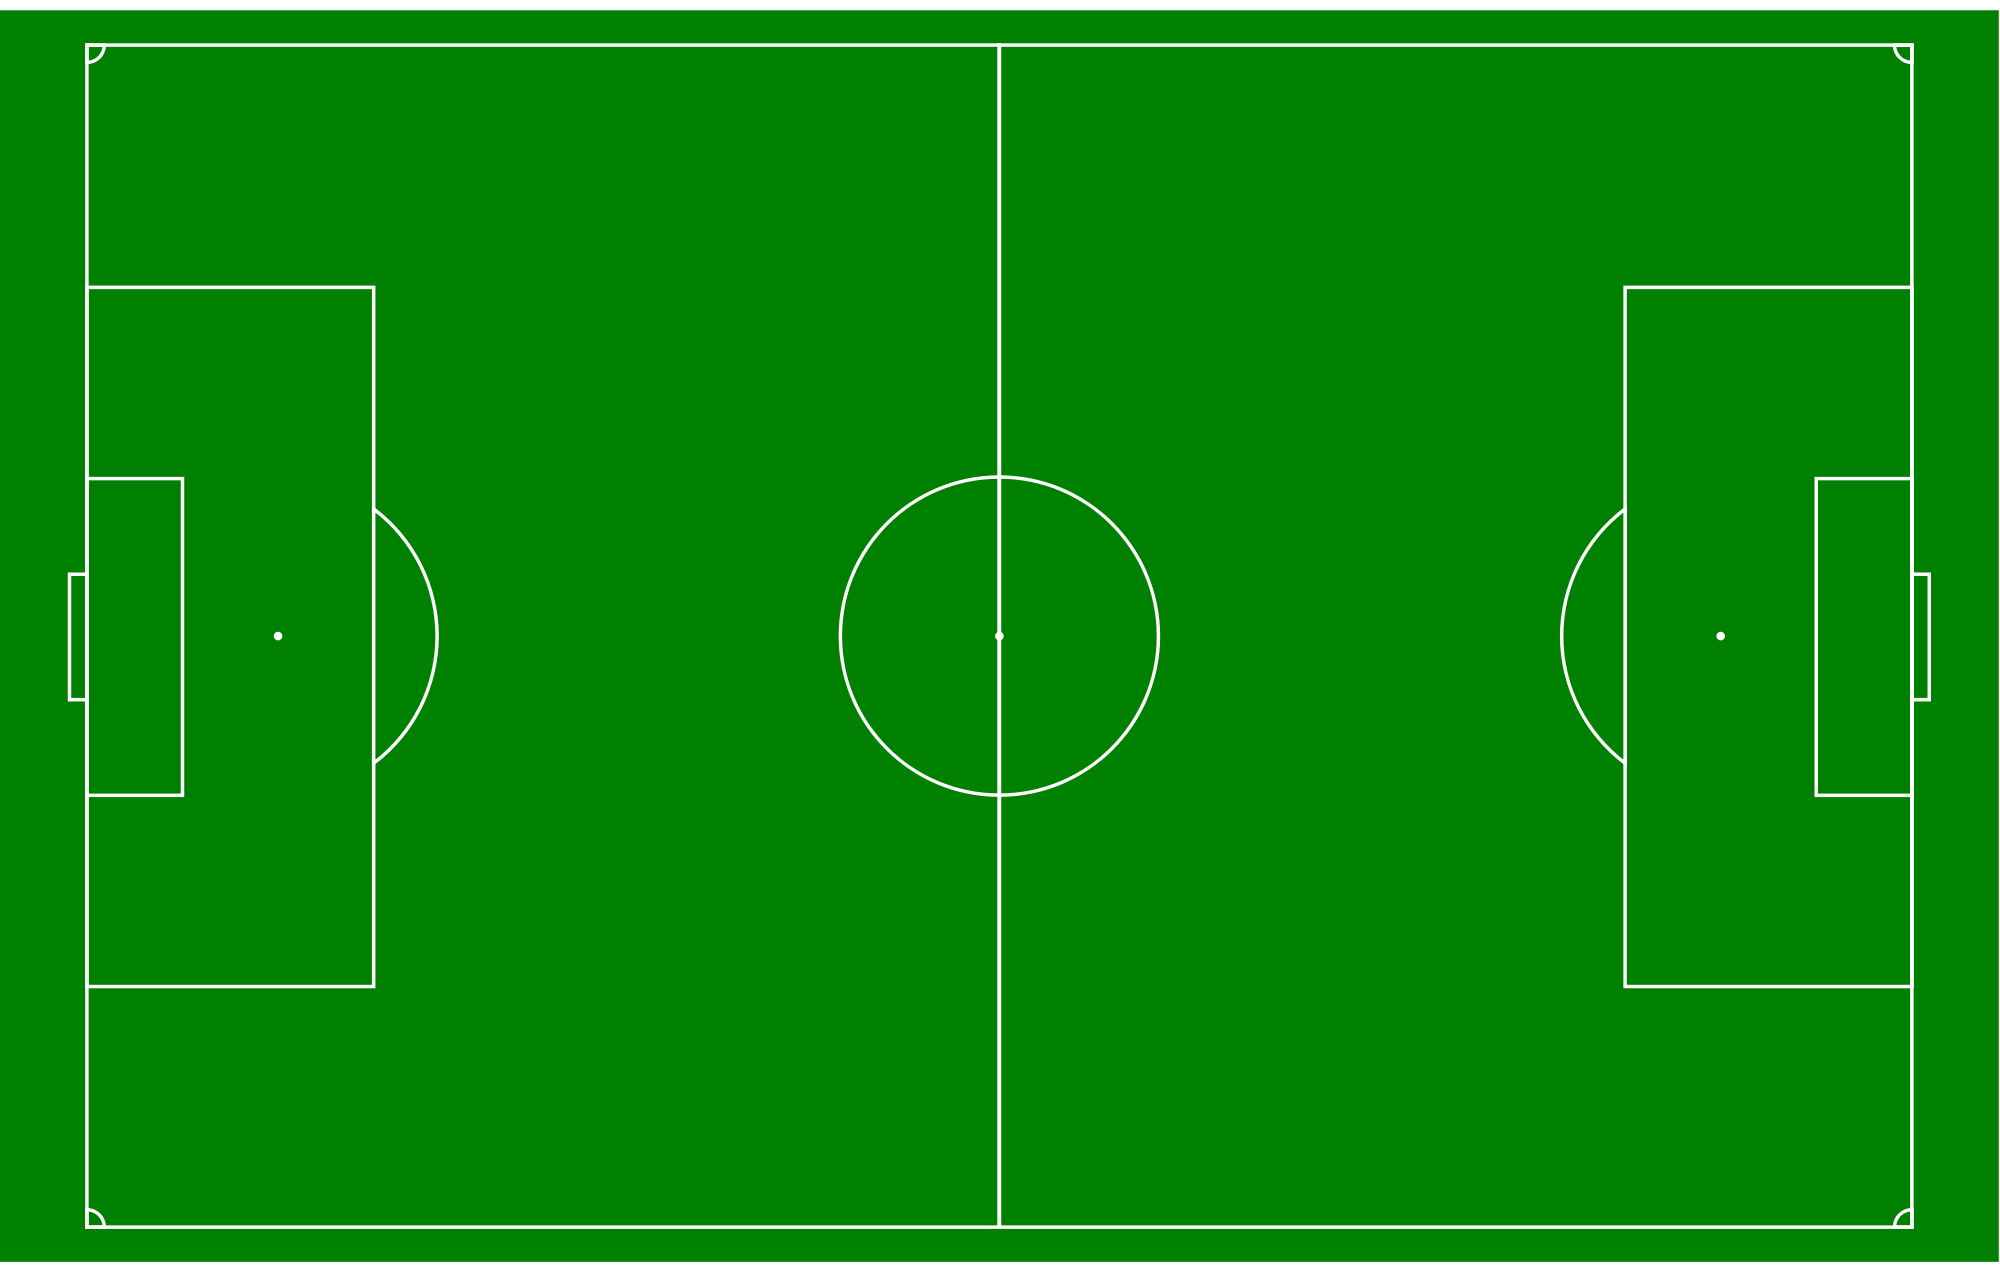 Football Pitch Google Search Football Pitch Football Field Soccer Field